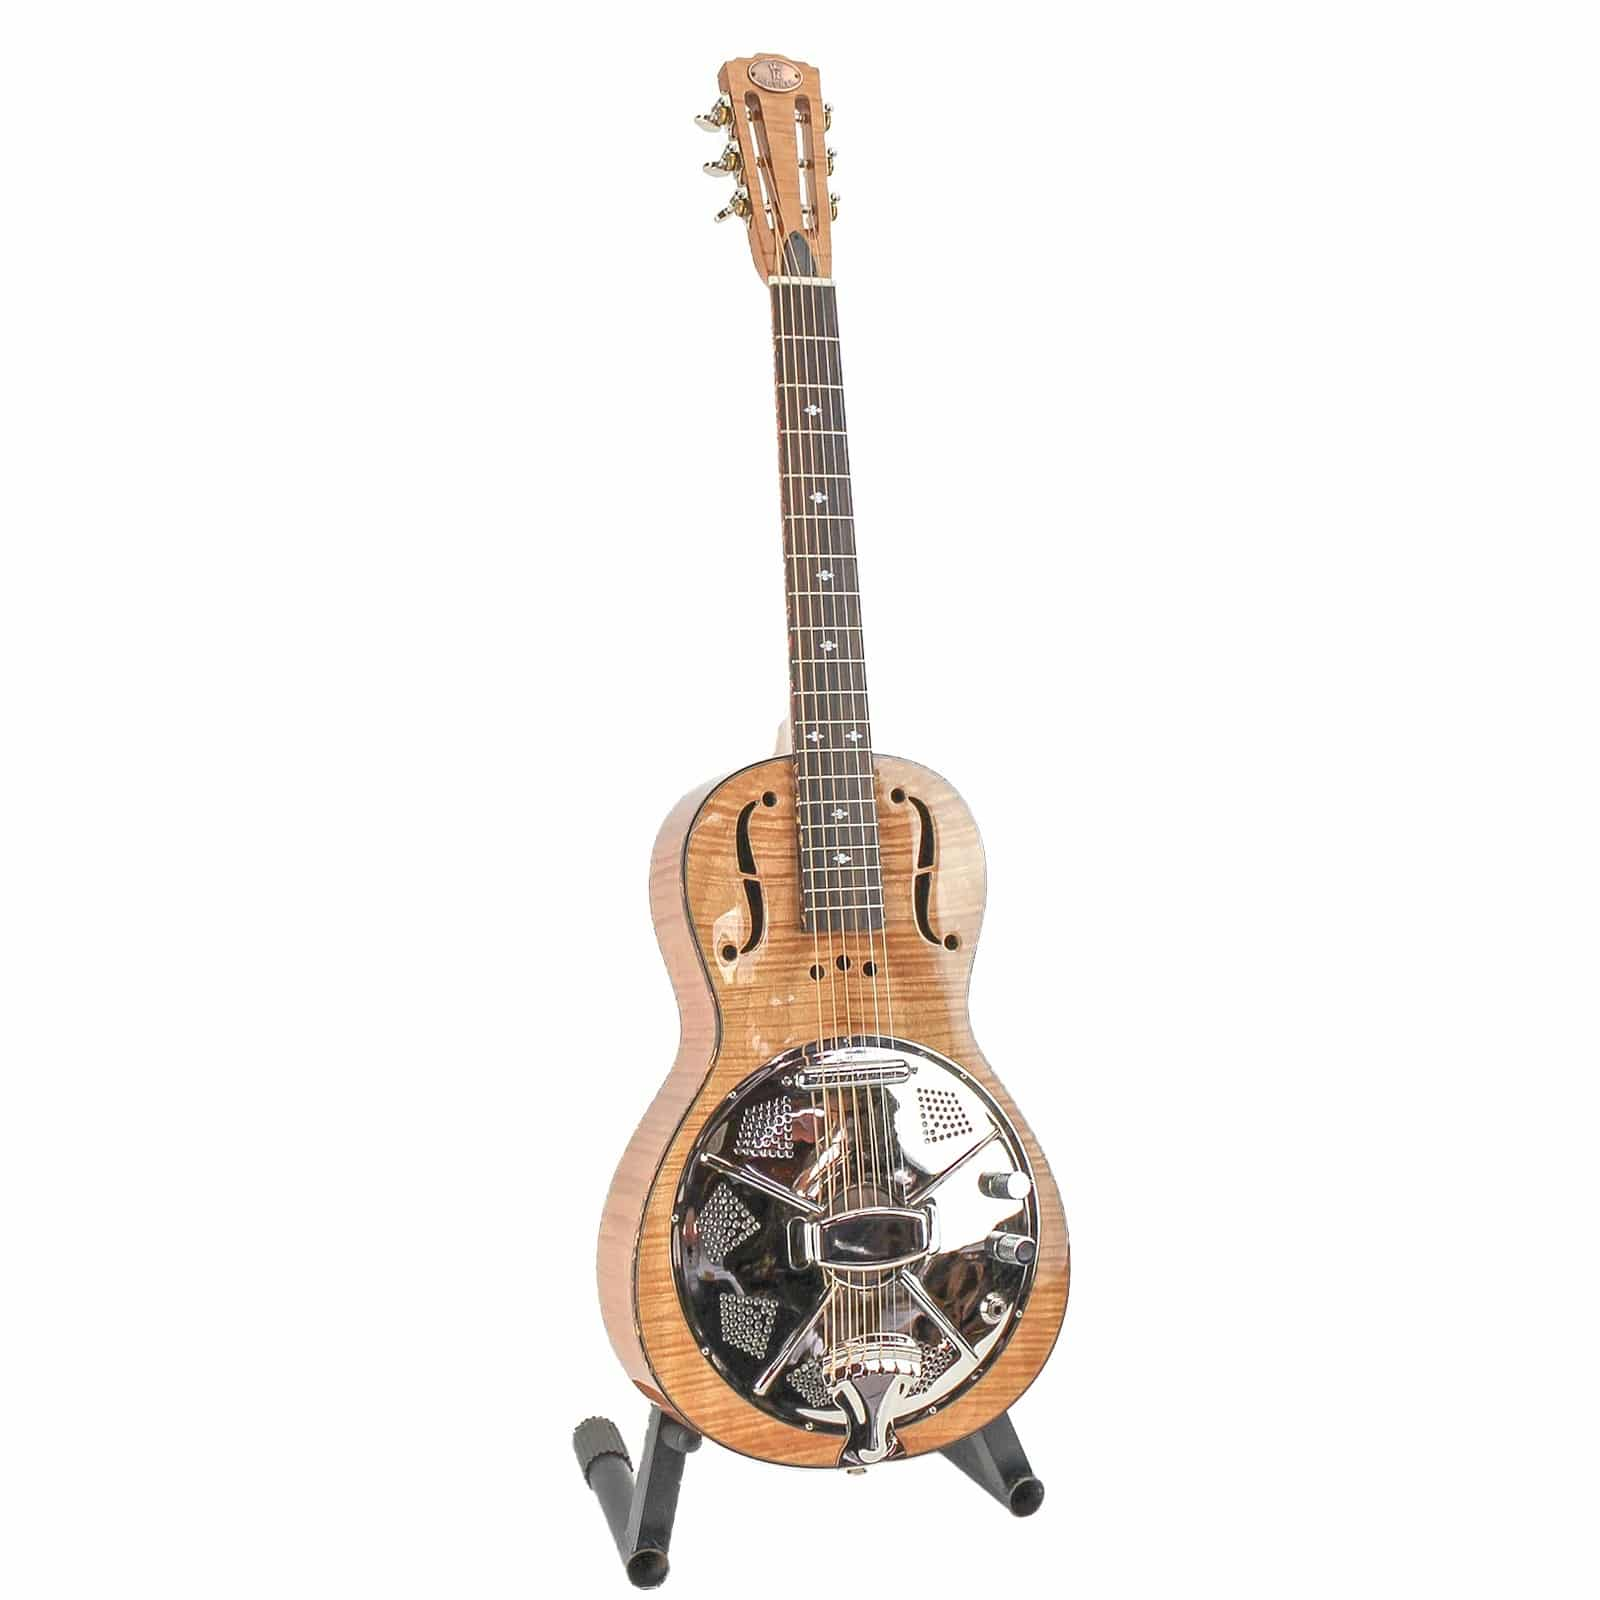 Imperial Guitars Theyre Made From Trees Lipstick Guitar Pickup Wiring Diagrams Royall Flame Maple Parlorator Gloss Finish